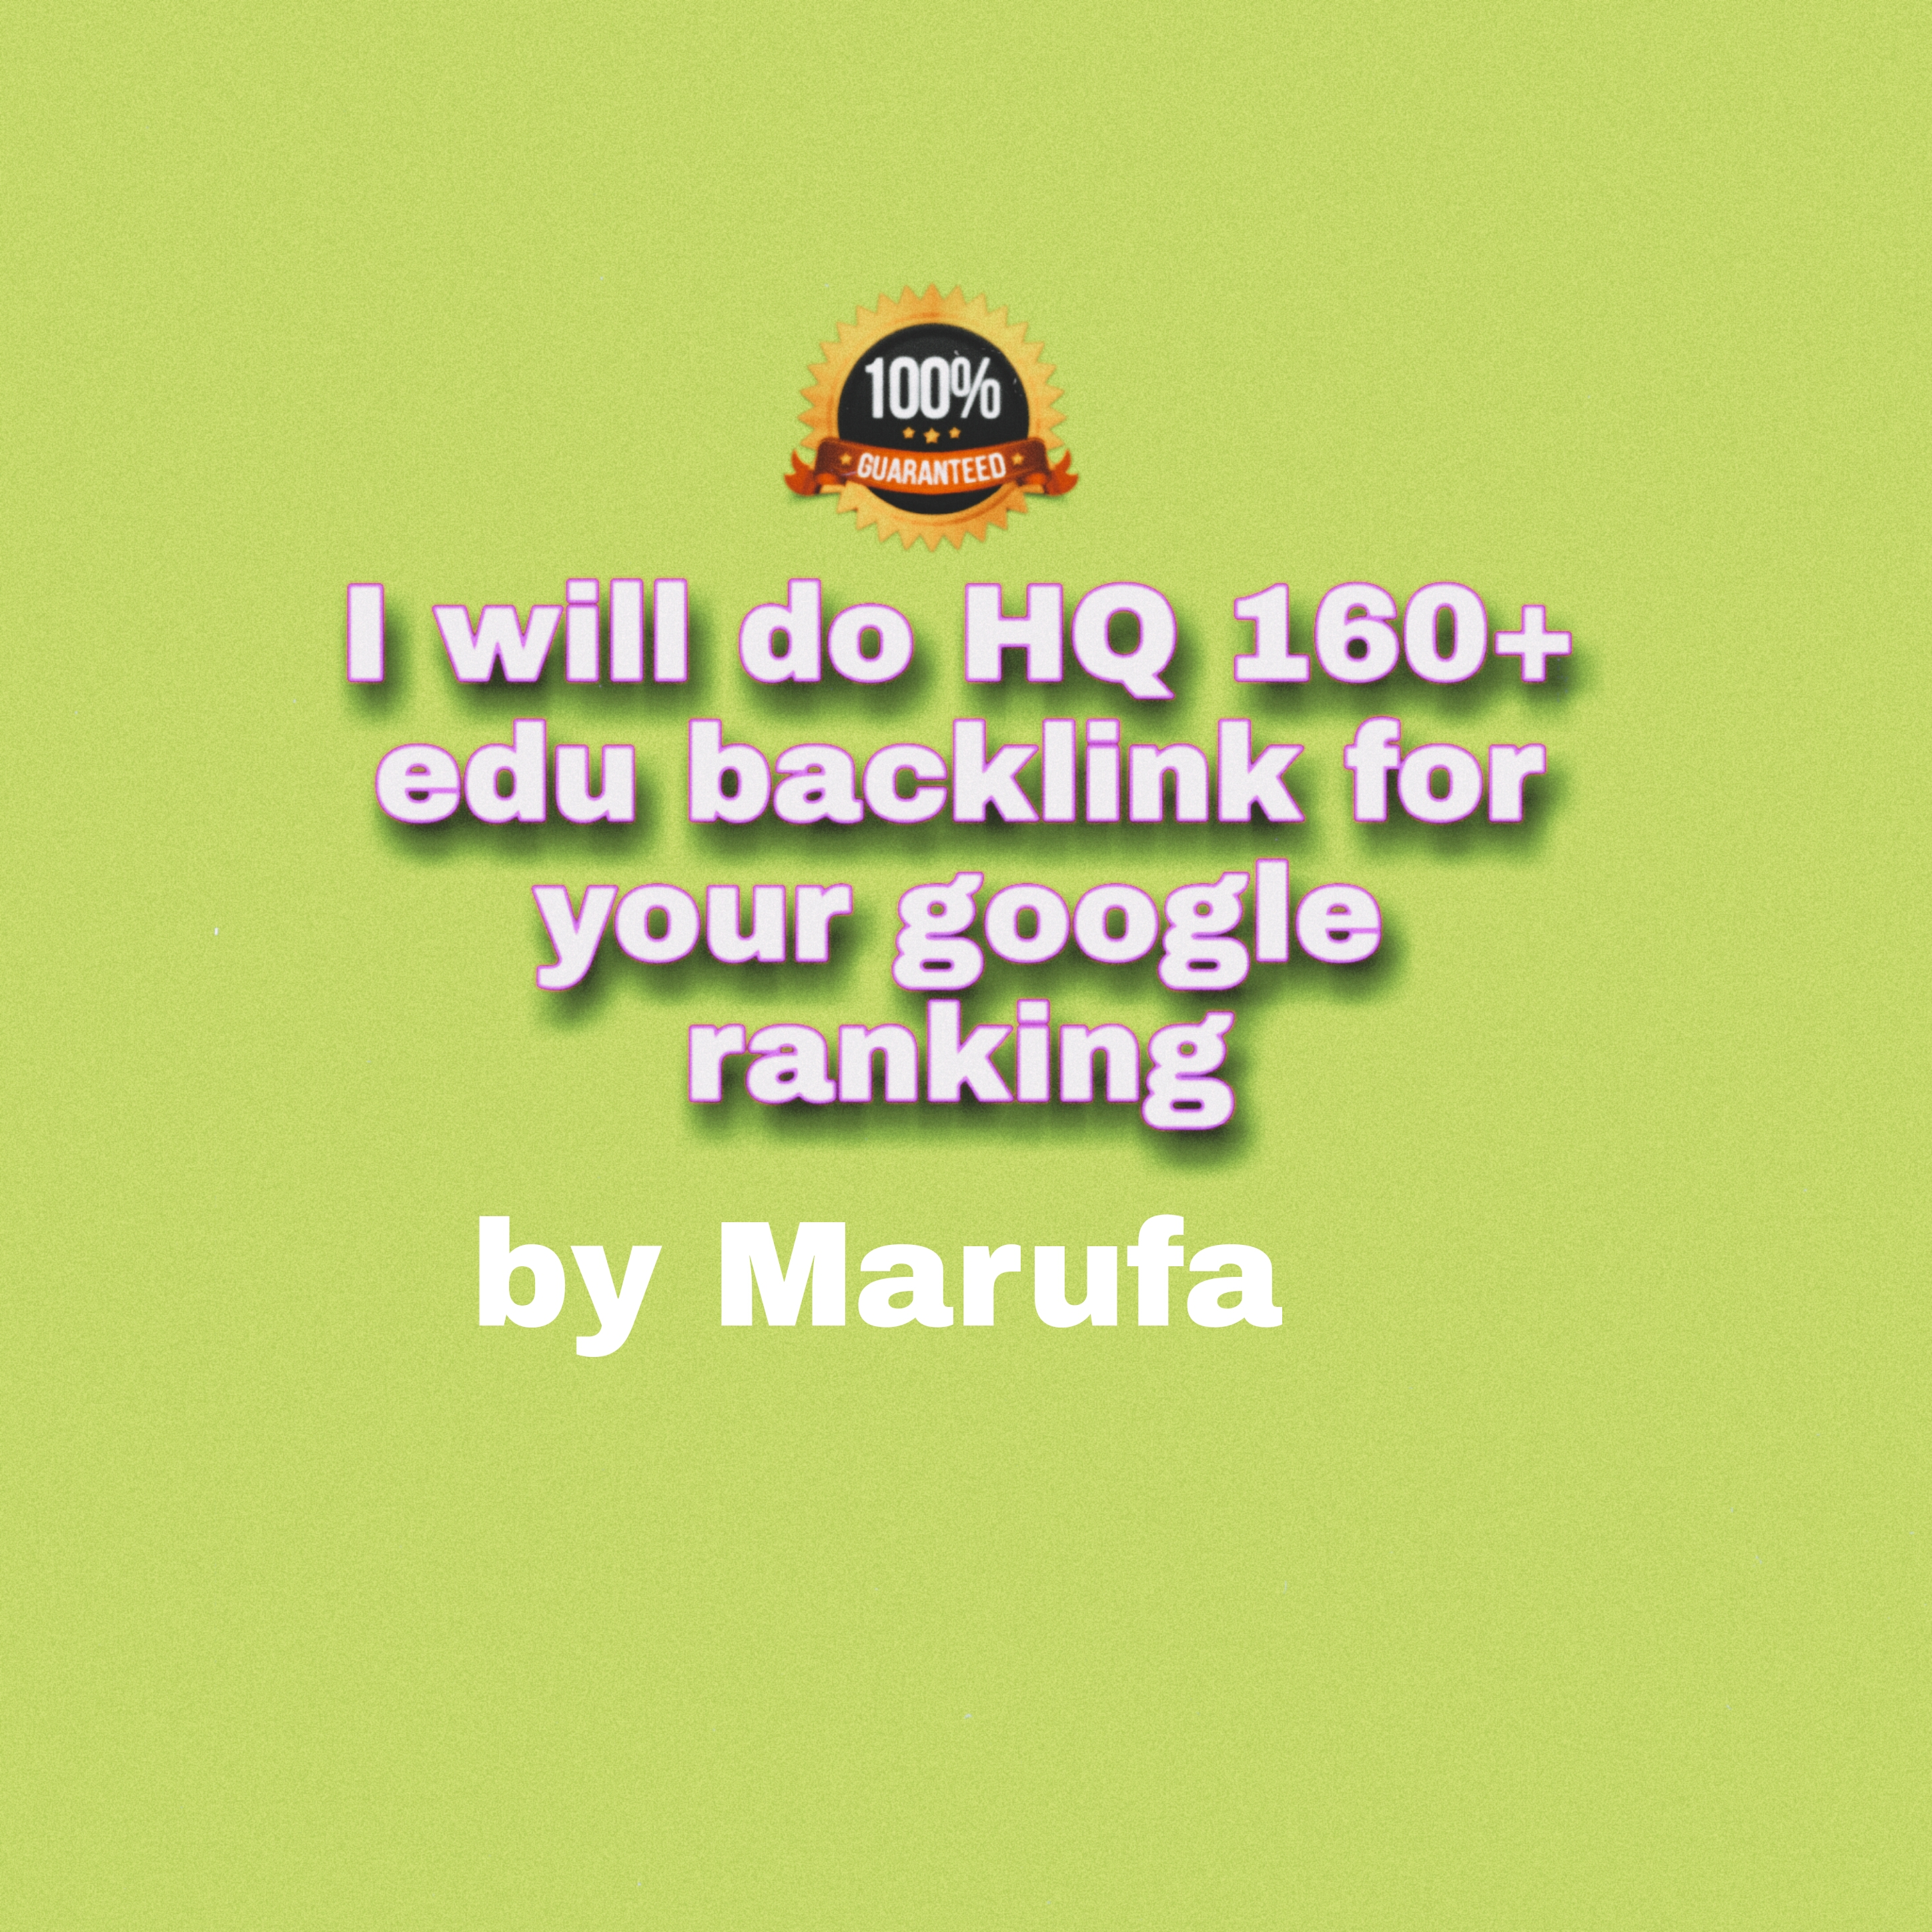 I will do 160+ HQ edu backlink for your google ranking